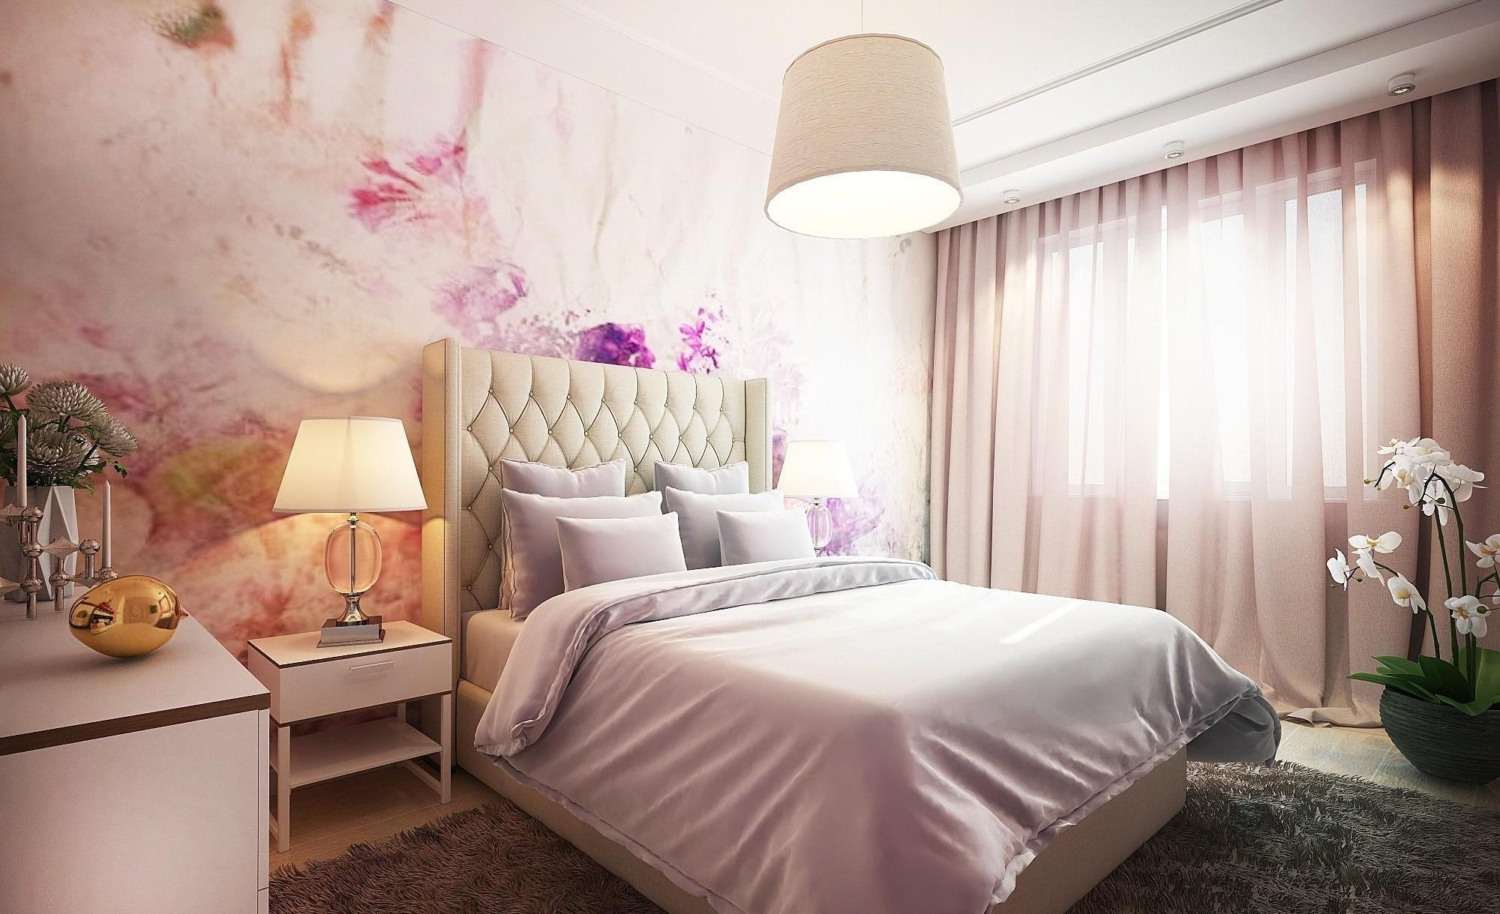 Romantic shades of purple and pink colors in a bedroom